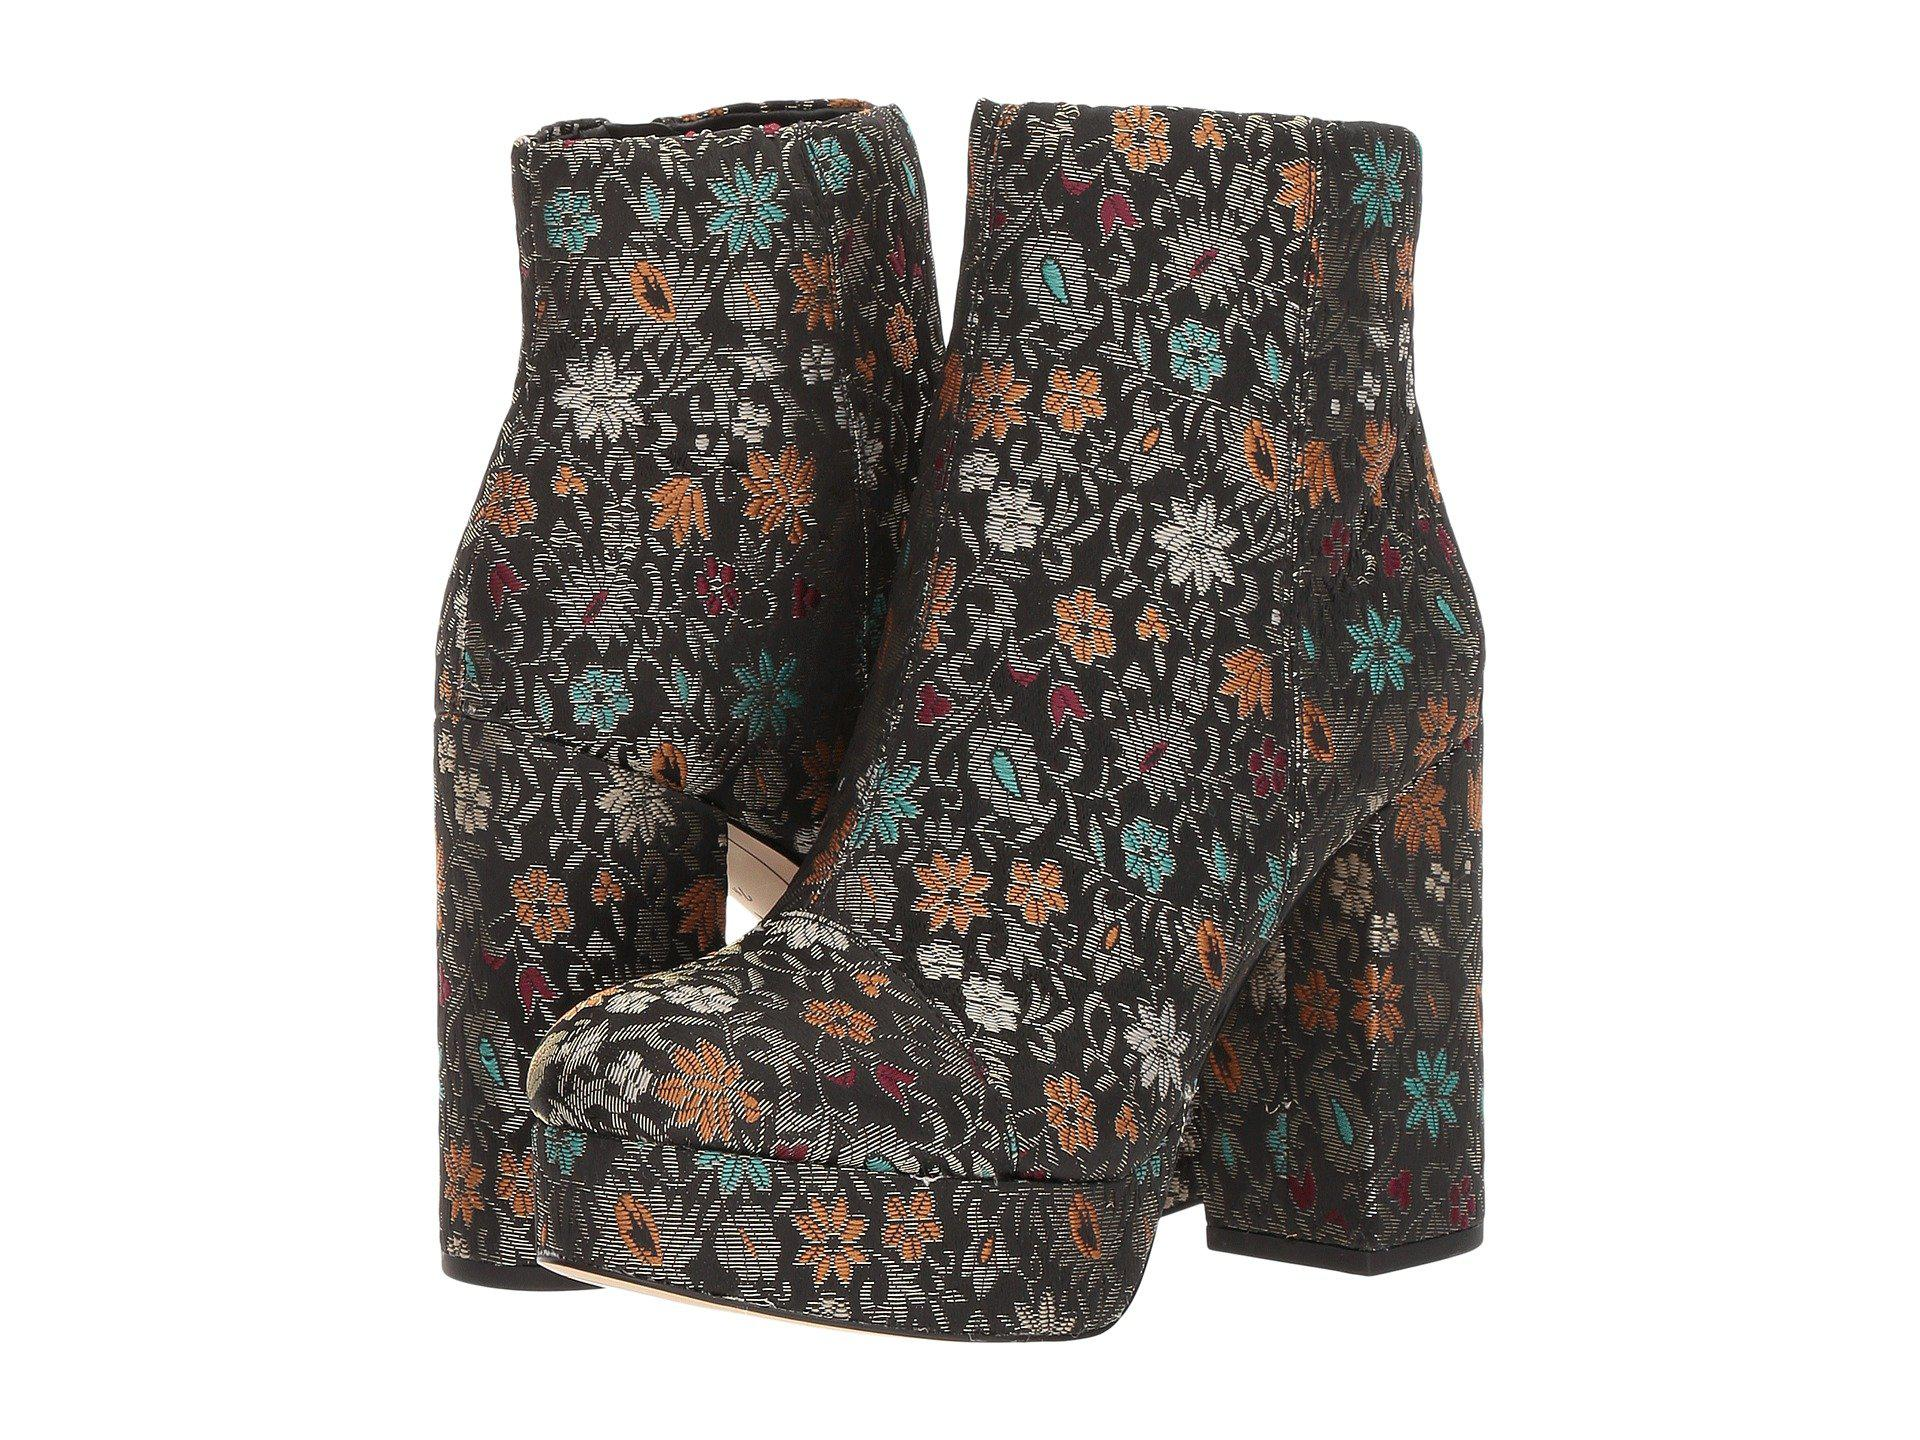 7ccd5687b048b3 Lyst - Sam Edelman Azra Floral Brocade Booties in Black - Save 66%